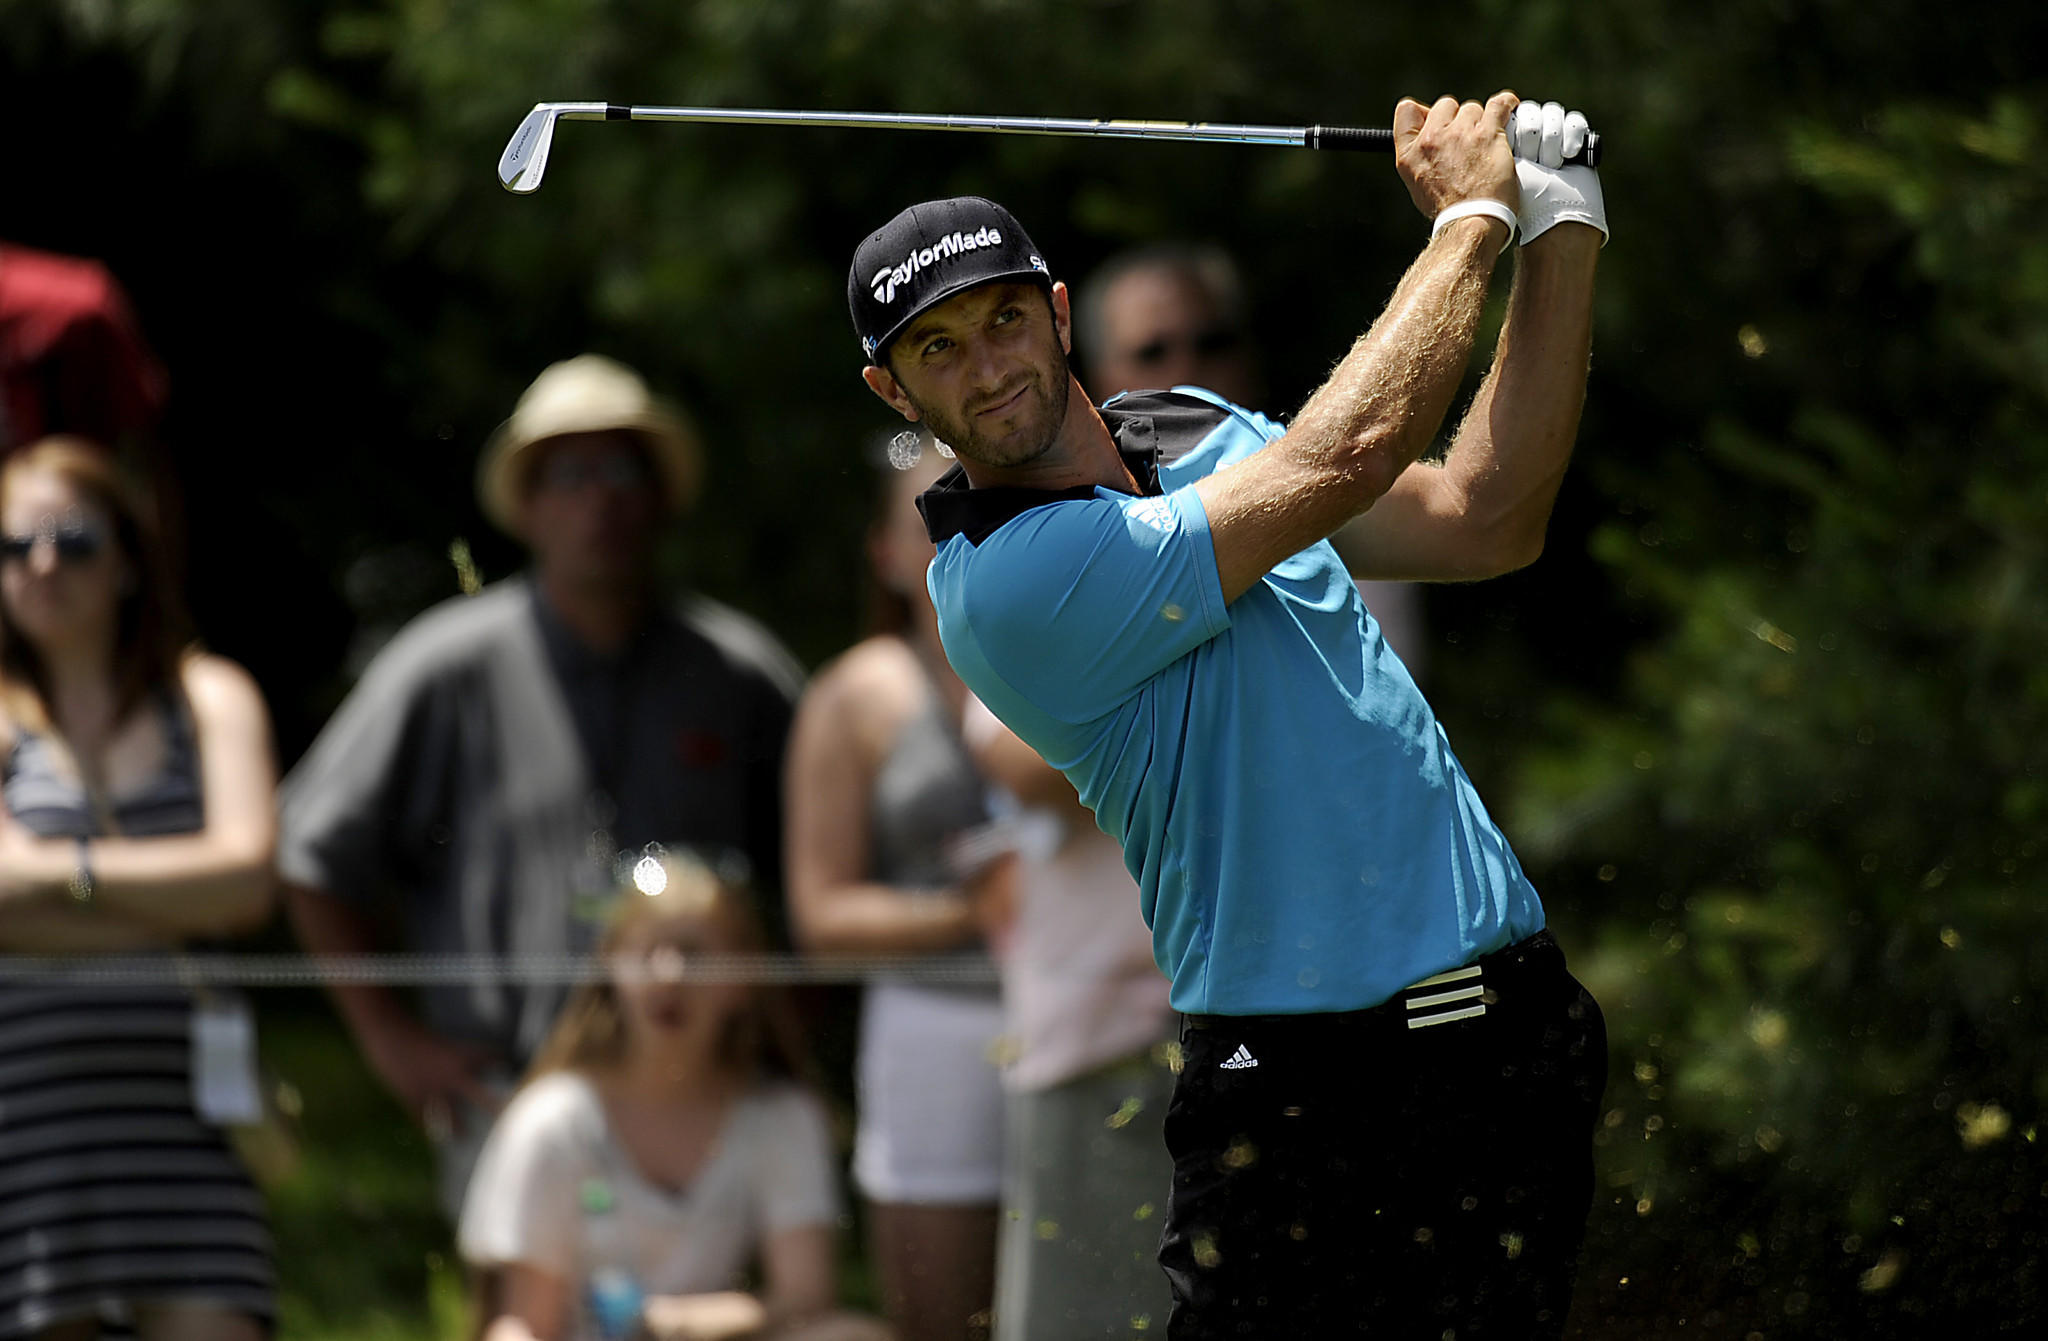 Cromwell, CT 06/20/14 Dustin Johnson shot back to back 4 under par rounds after finishing the second round of the 2014 Travelers Championship Friday in Cromwell. Johnson is 3 back from current leader Scott Langley at -11. Photo by JOHN WOIKE | woike@courant.com hc-travelers-day2